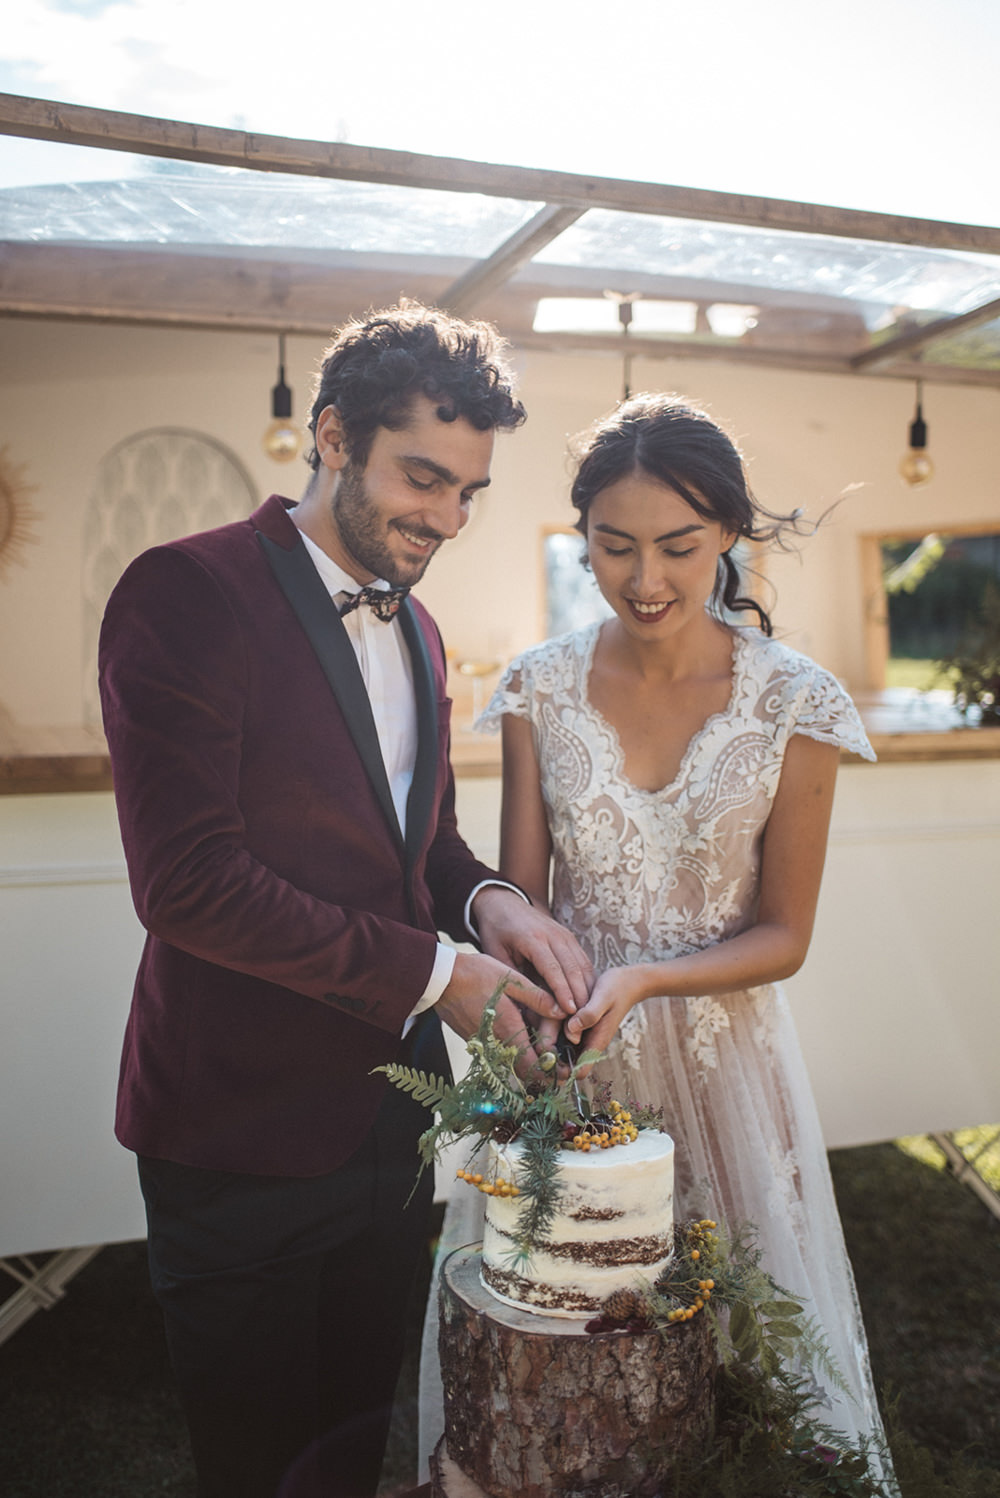 Cake Log Tree Stump Semi Naked Flowers Greenery Foliage French Alps Folk Boho Mountain Wedding Ideas Katja & Simon Photography